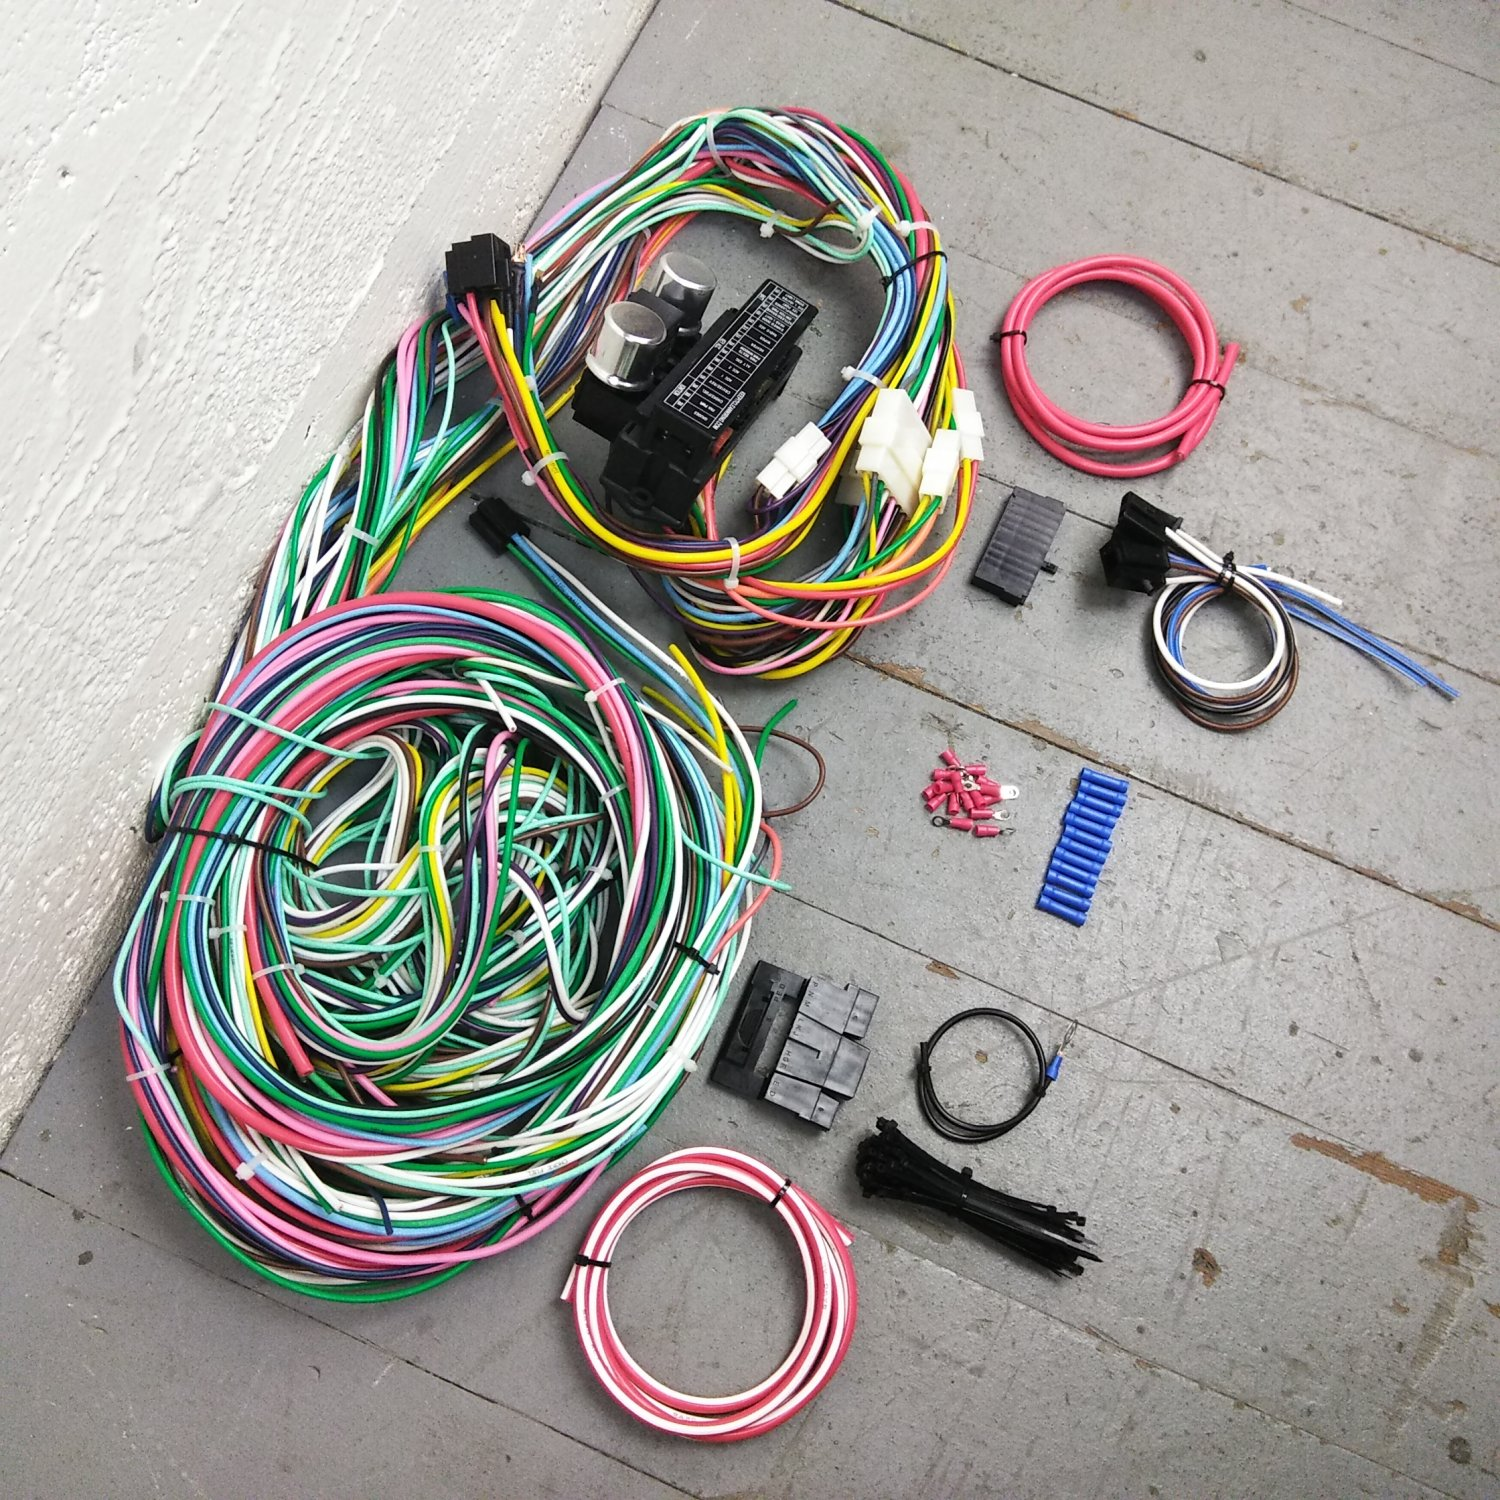 1970 1974 dodge challenger wire harness upgrade kit fits painless 1973 dodge challenger wiring harness 1970 1974 dodge challenger wire harness upgrade kit fits painless complete new bar_product_description_c